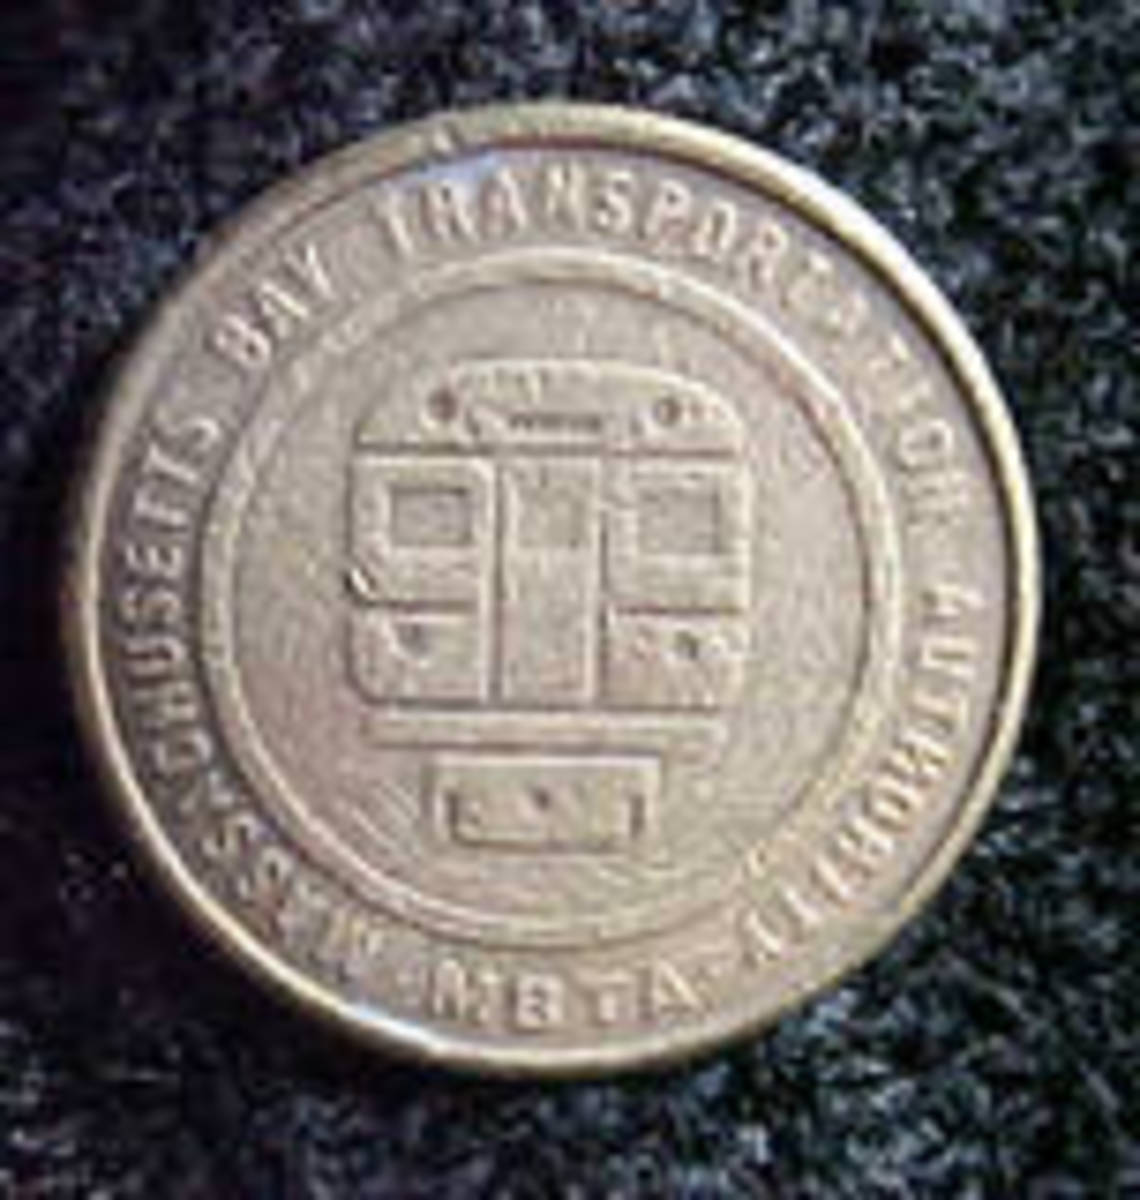 This is a fine example of an MBTA coin.